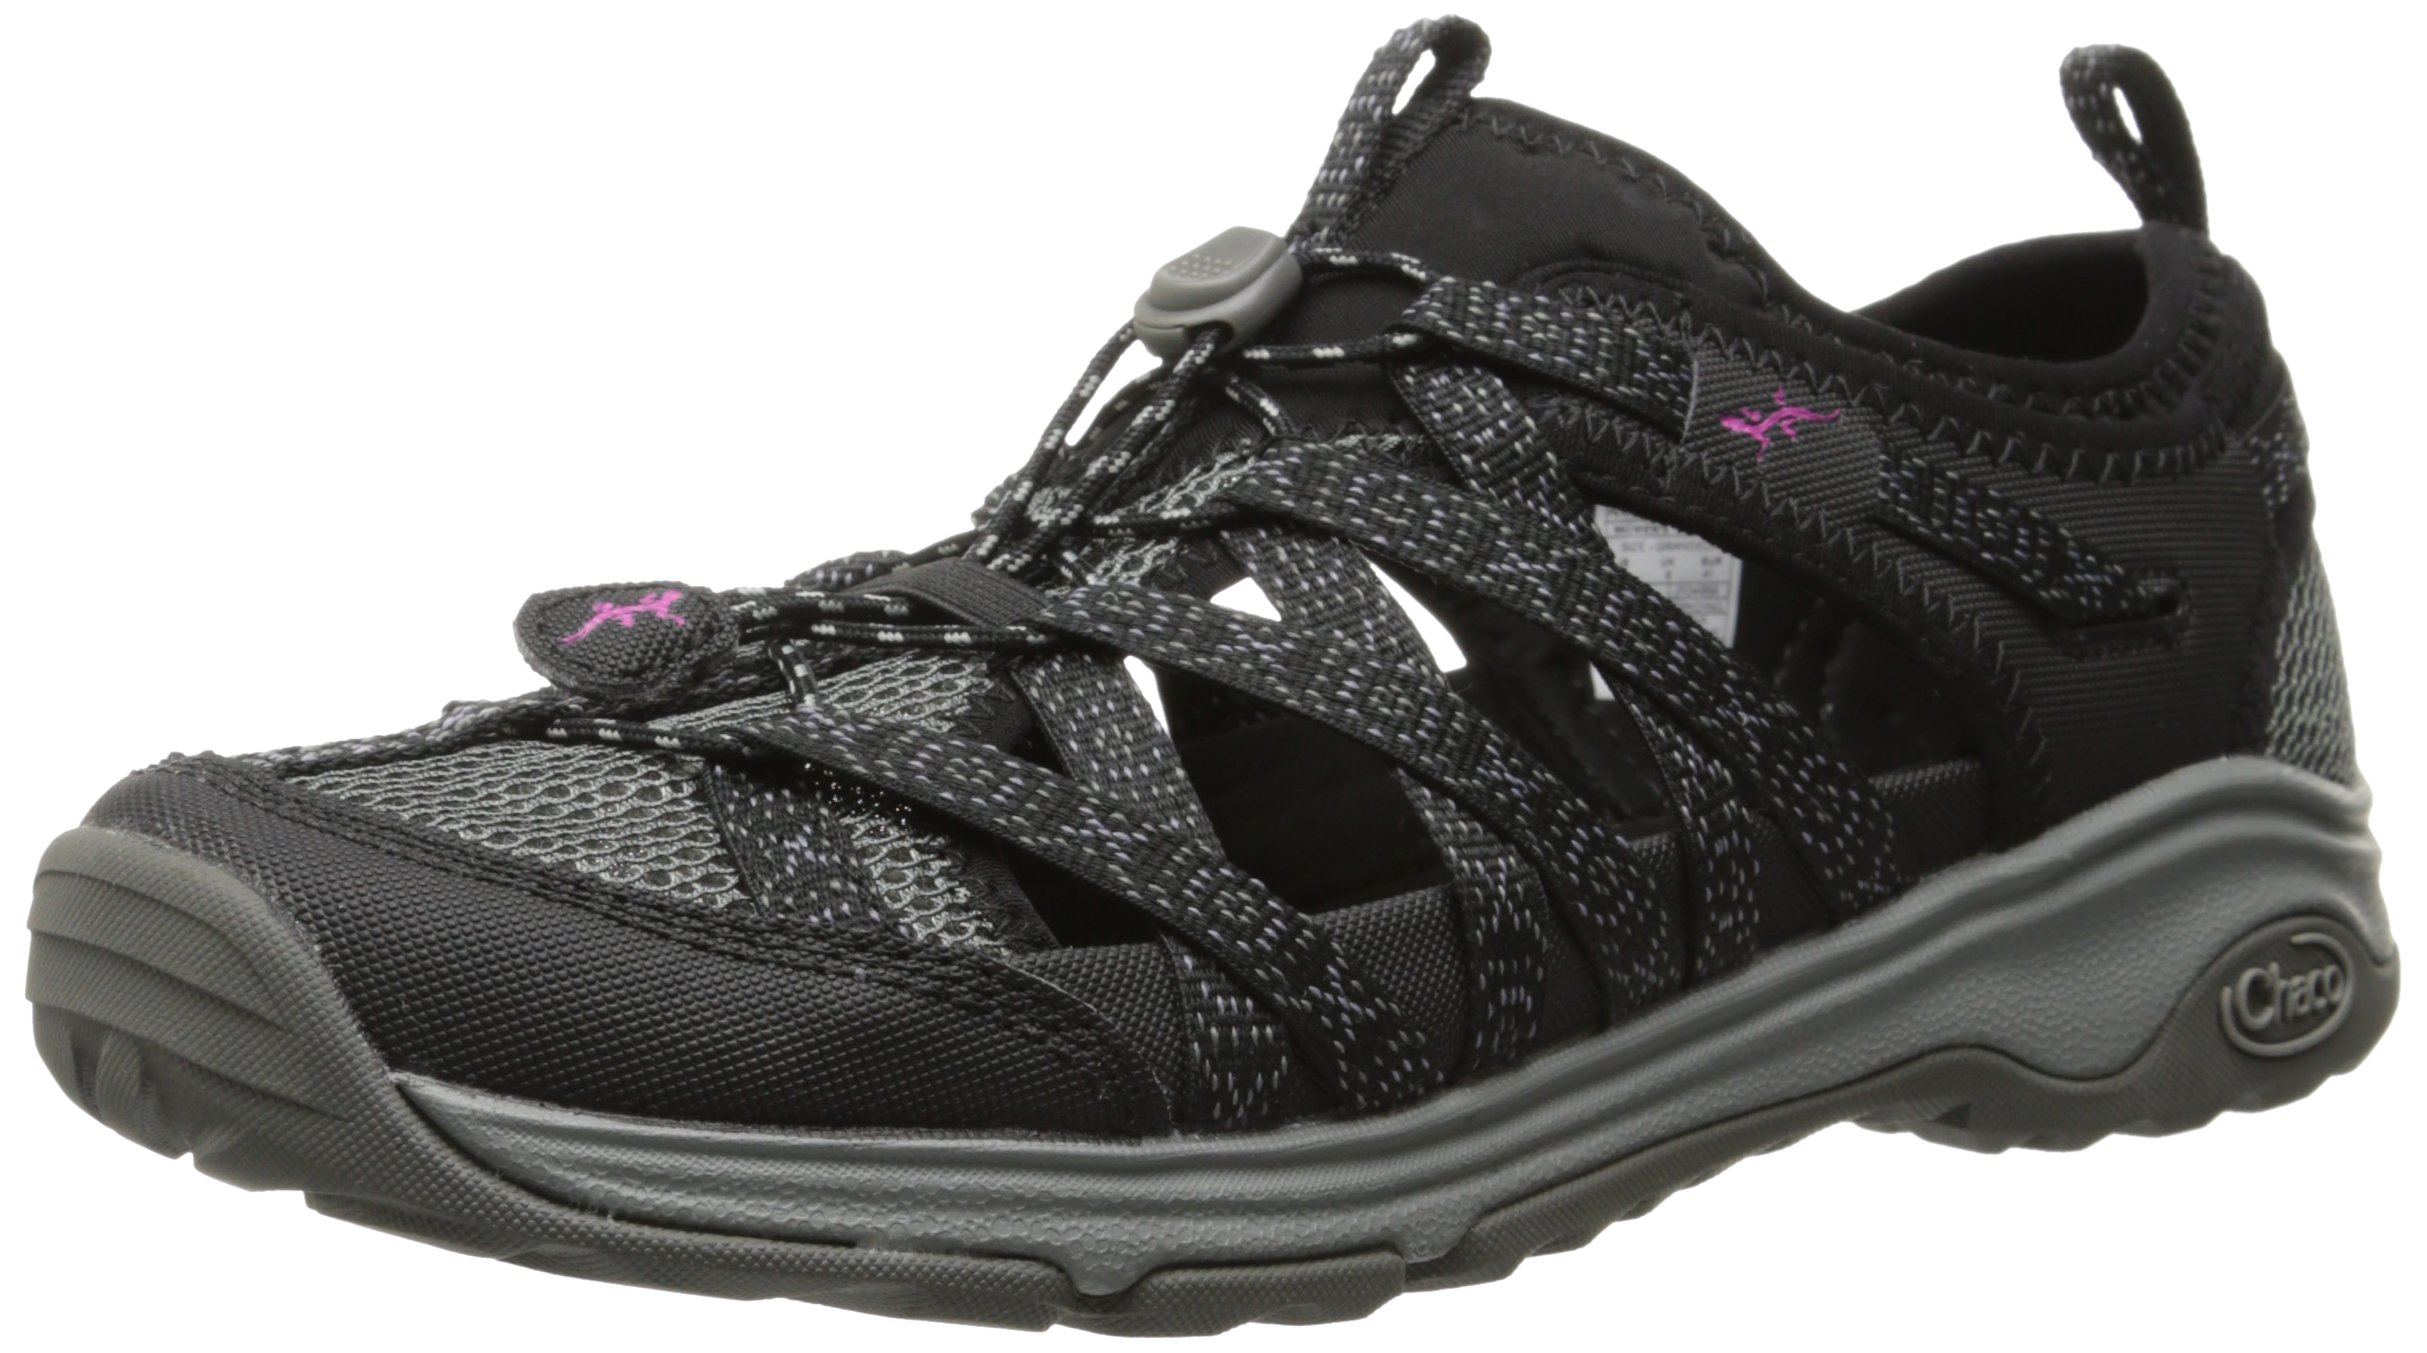 Chaco Women's Outcross Evo 1 Hiking Shoe, Xoxo, 8 M US by Chaco